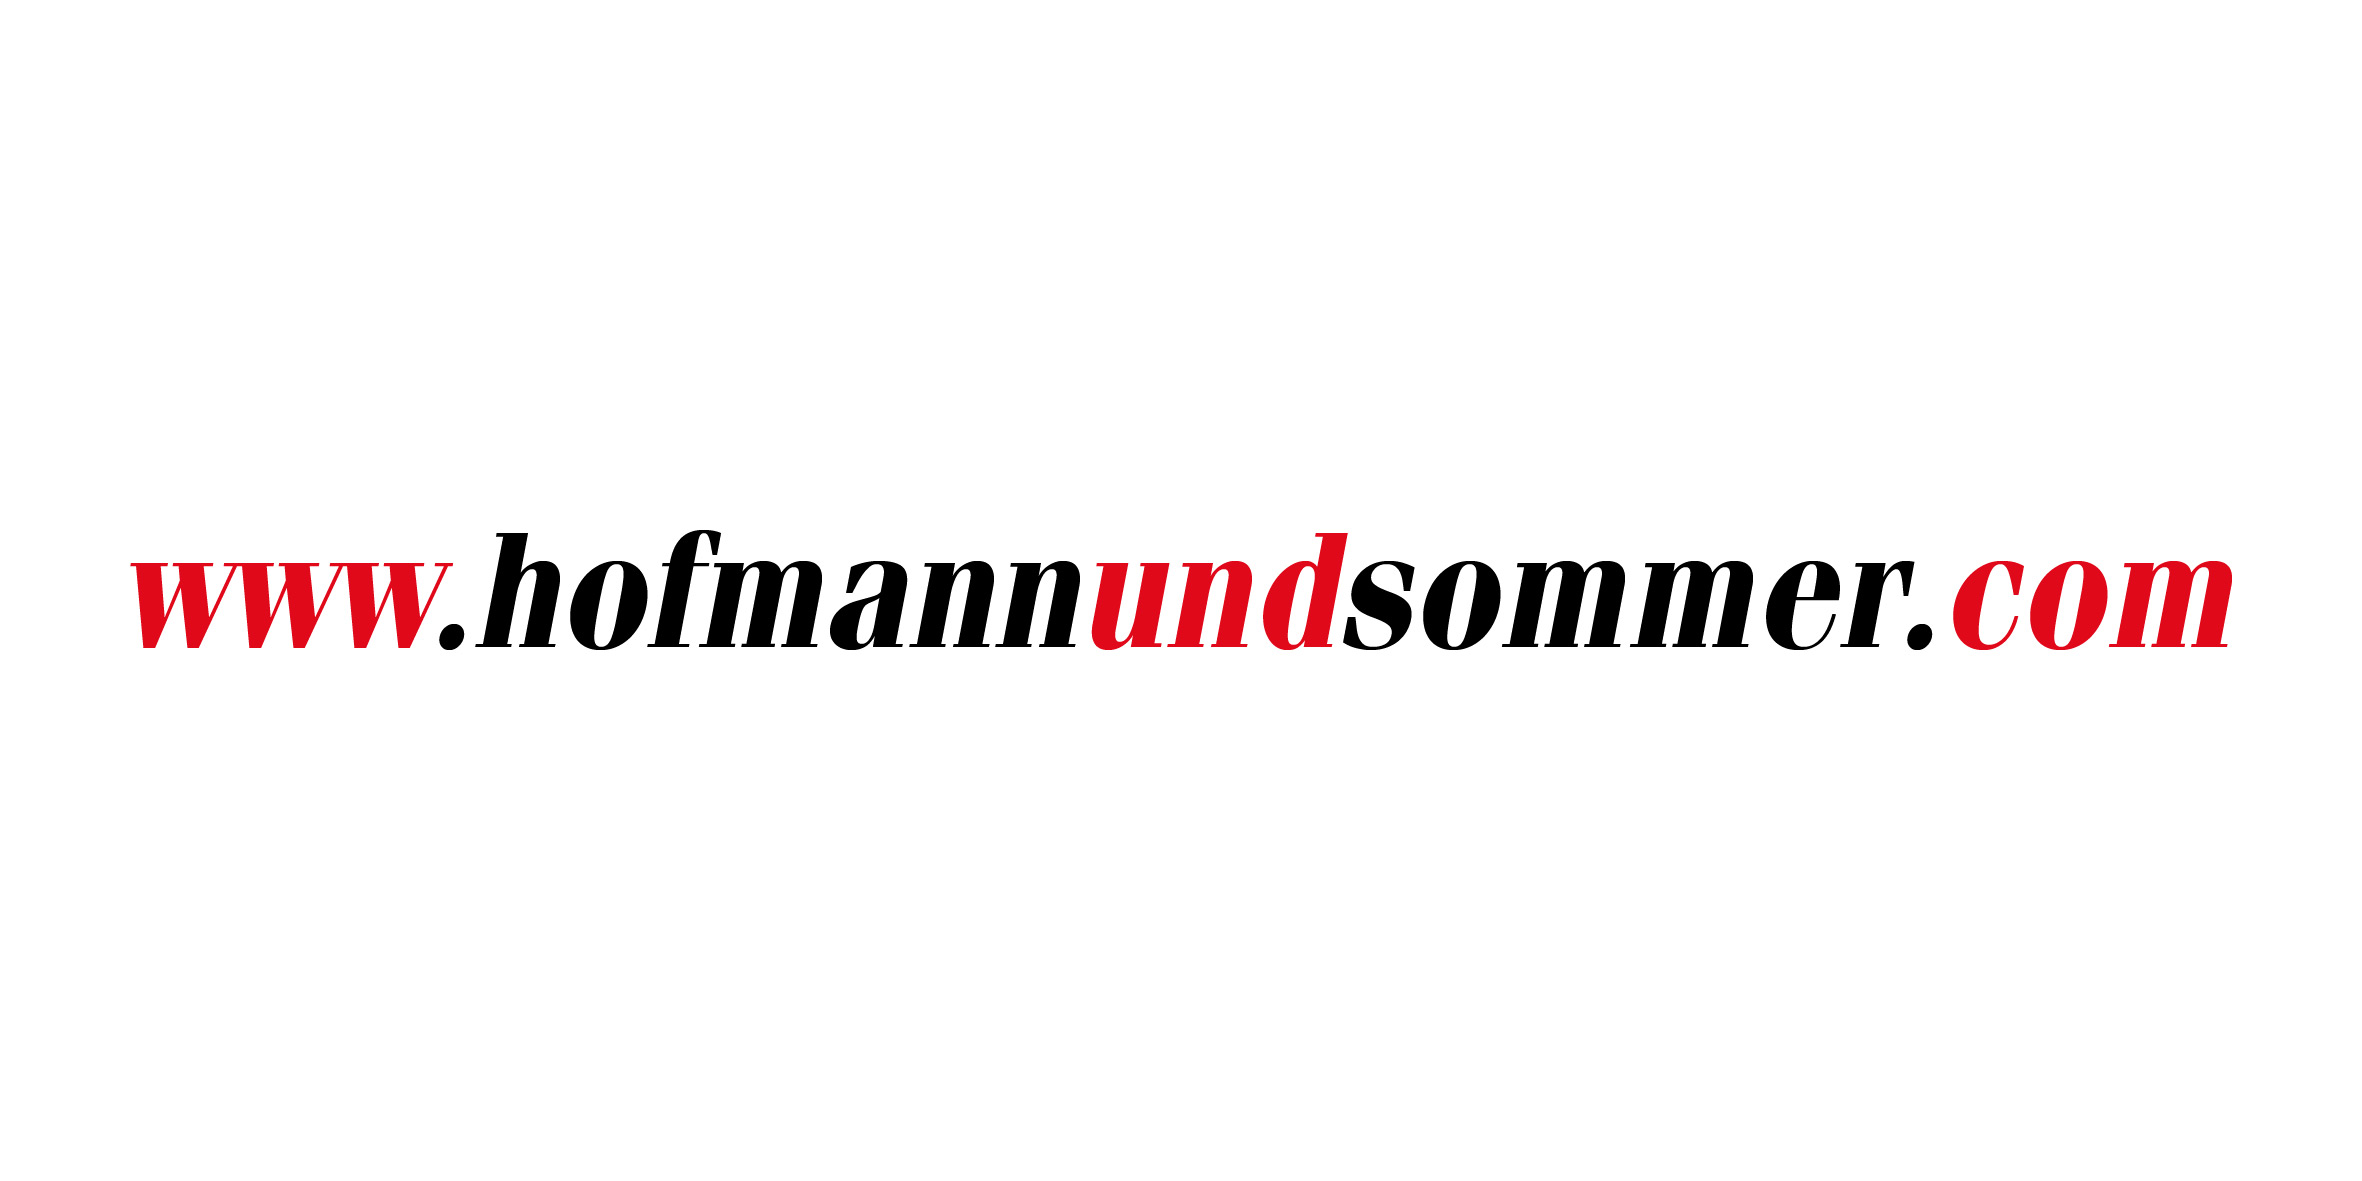 Domain of the website Hofmann & Sommer dotcom